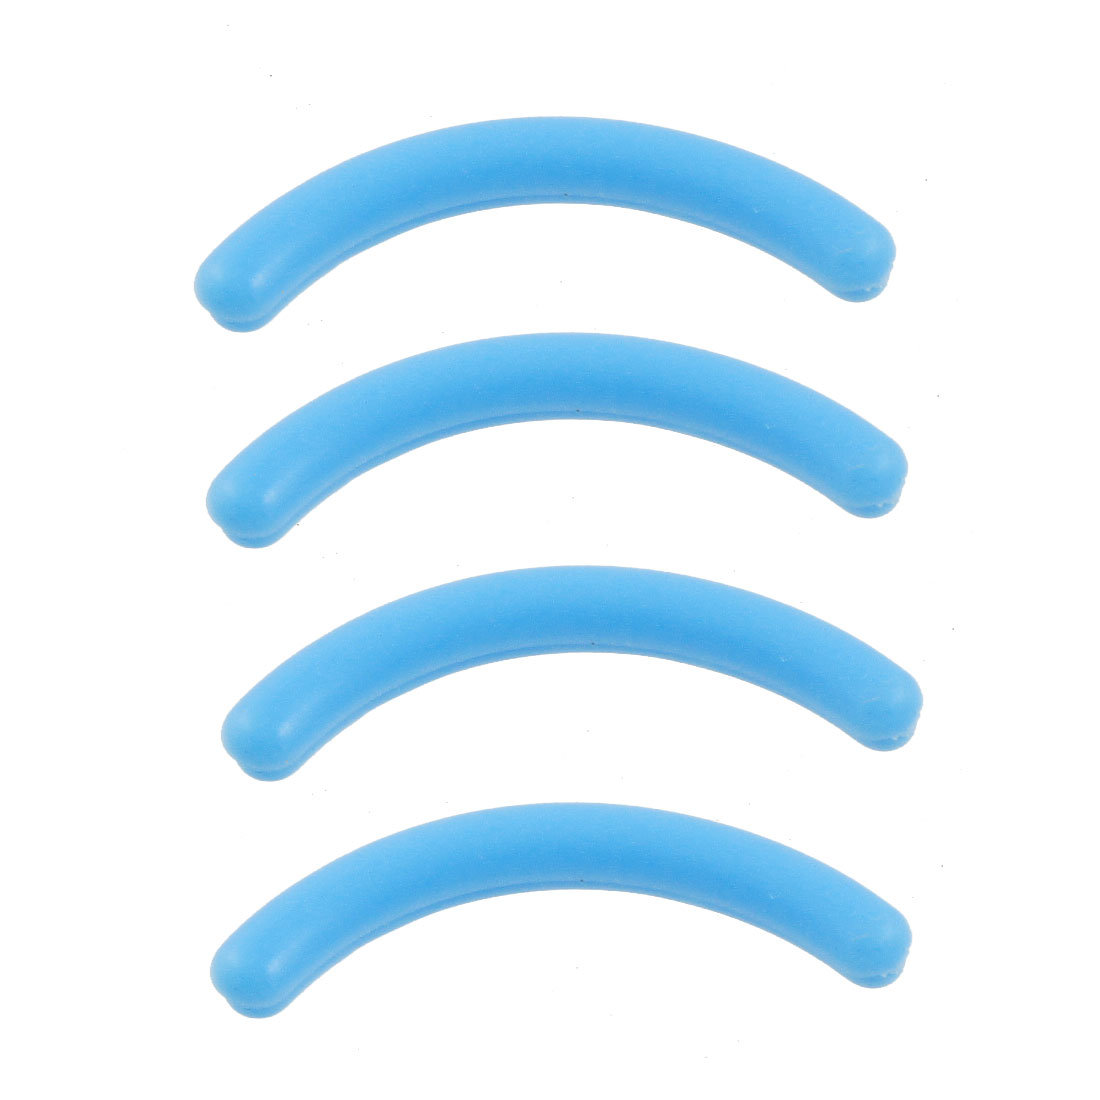 4 Pcs Rubber Eyelash Curler Refill Cushion Pad Replacement Blue